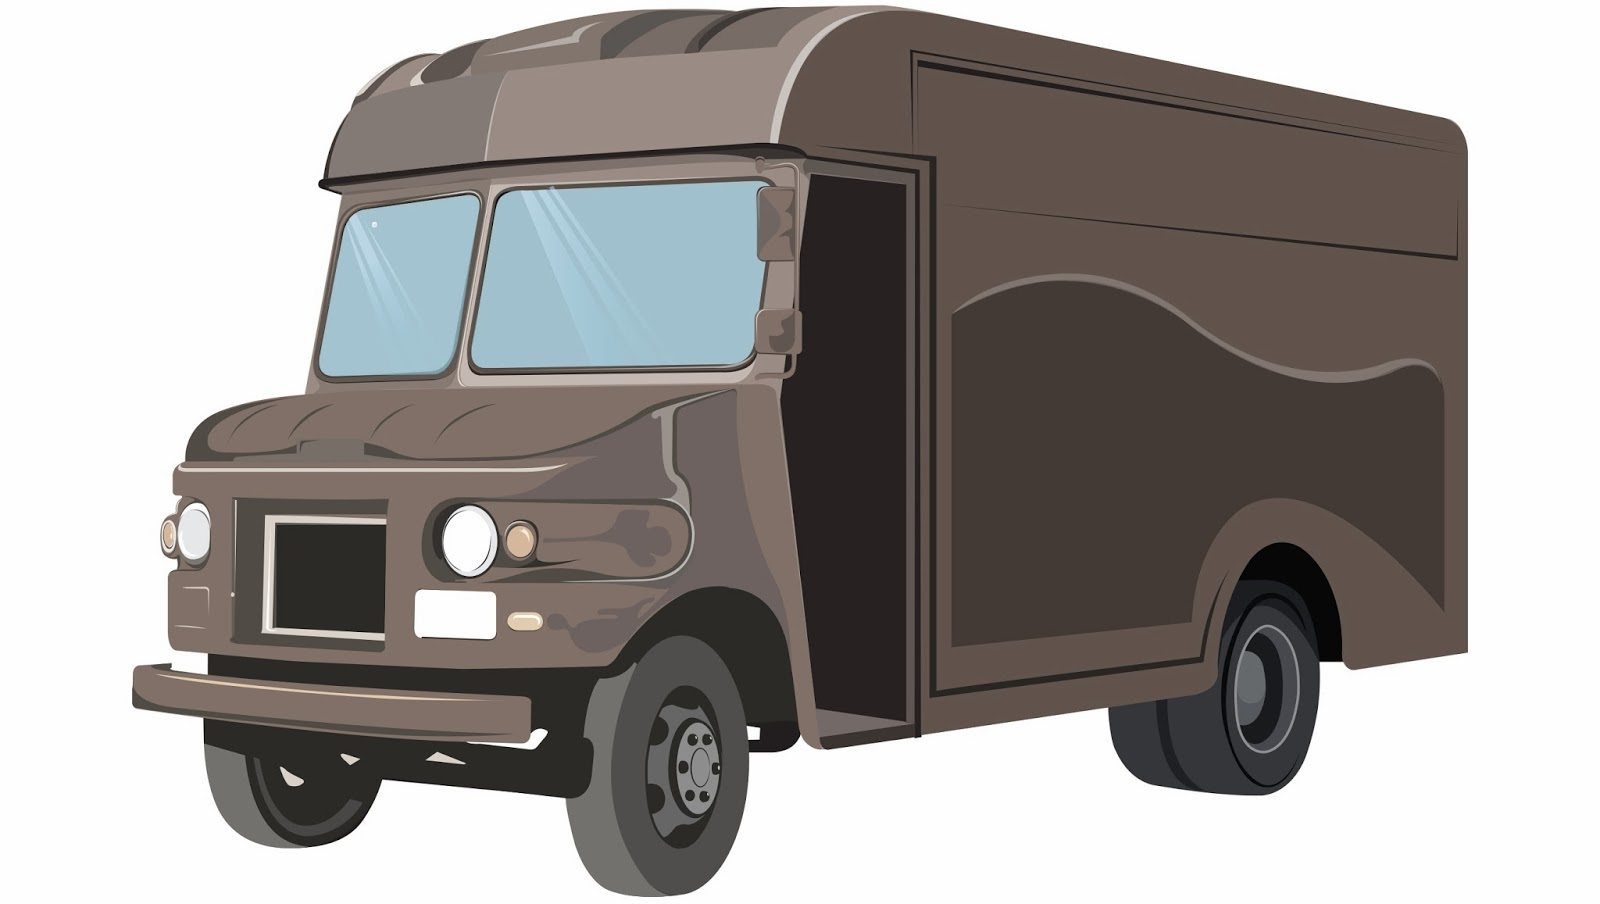 Ups clipart - ClipgroundUps Delivery Truck Clipart